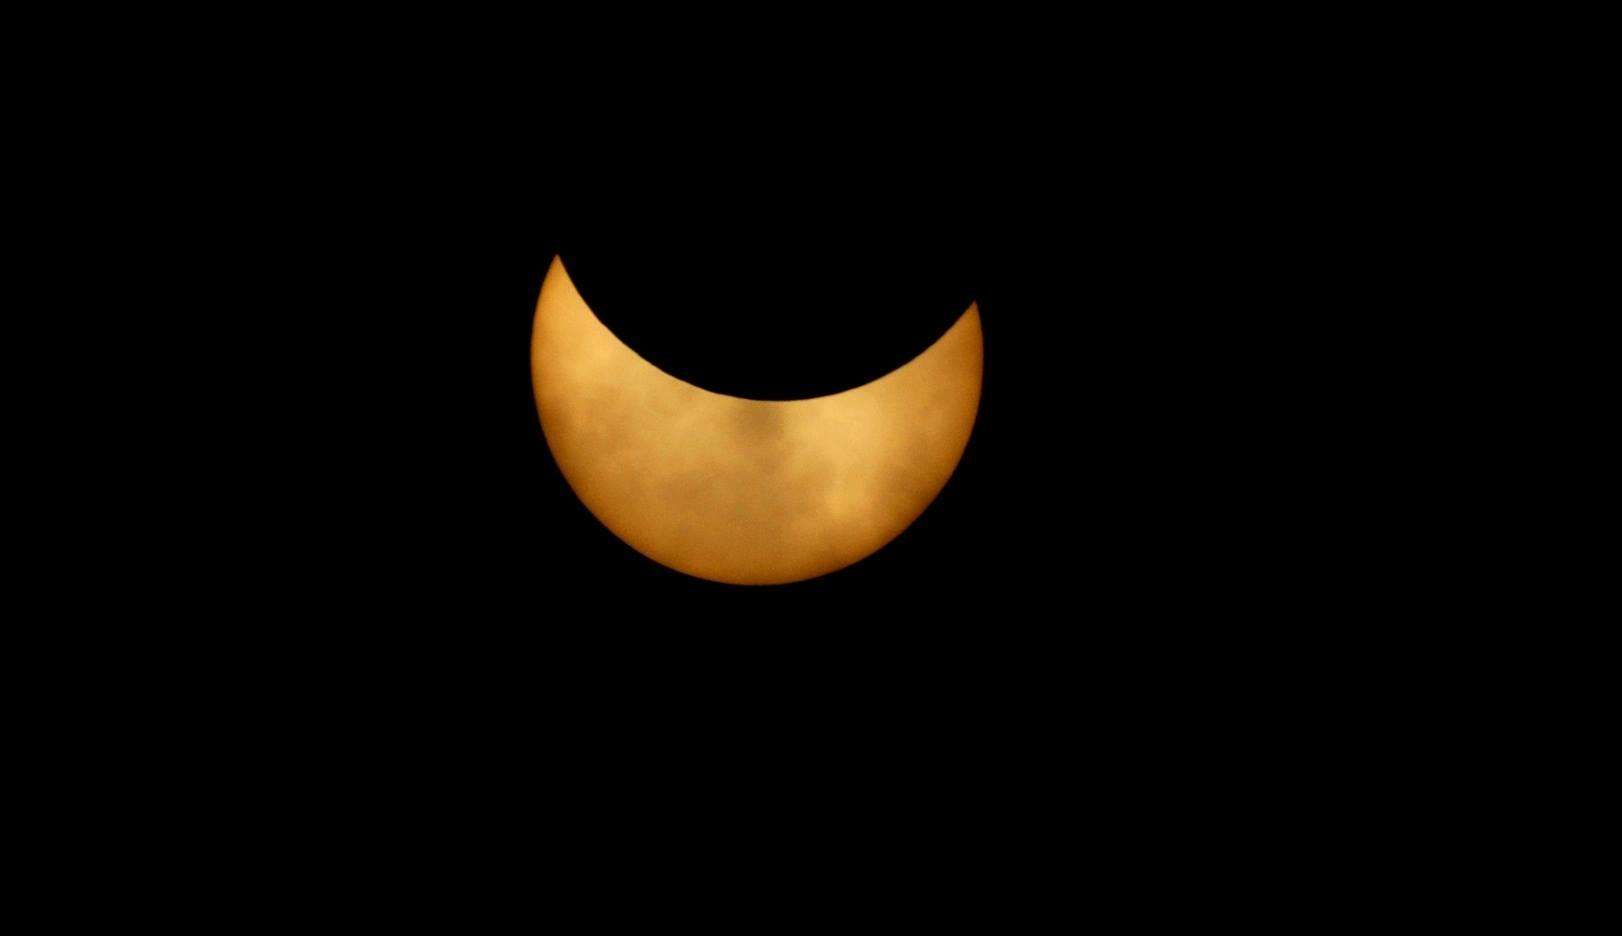 The eclipse from Sighet, Romania